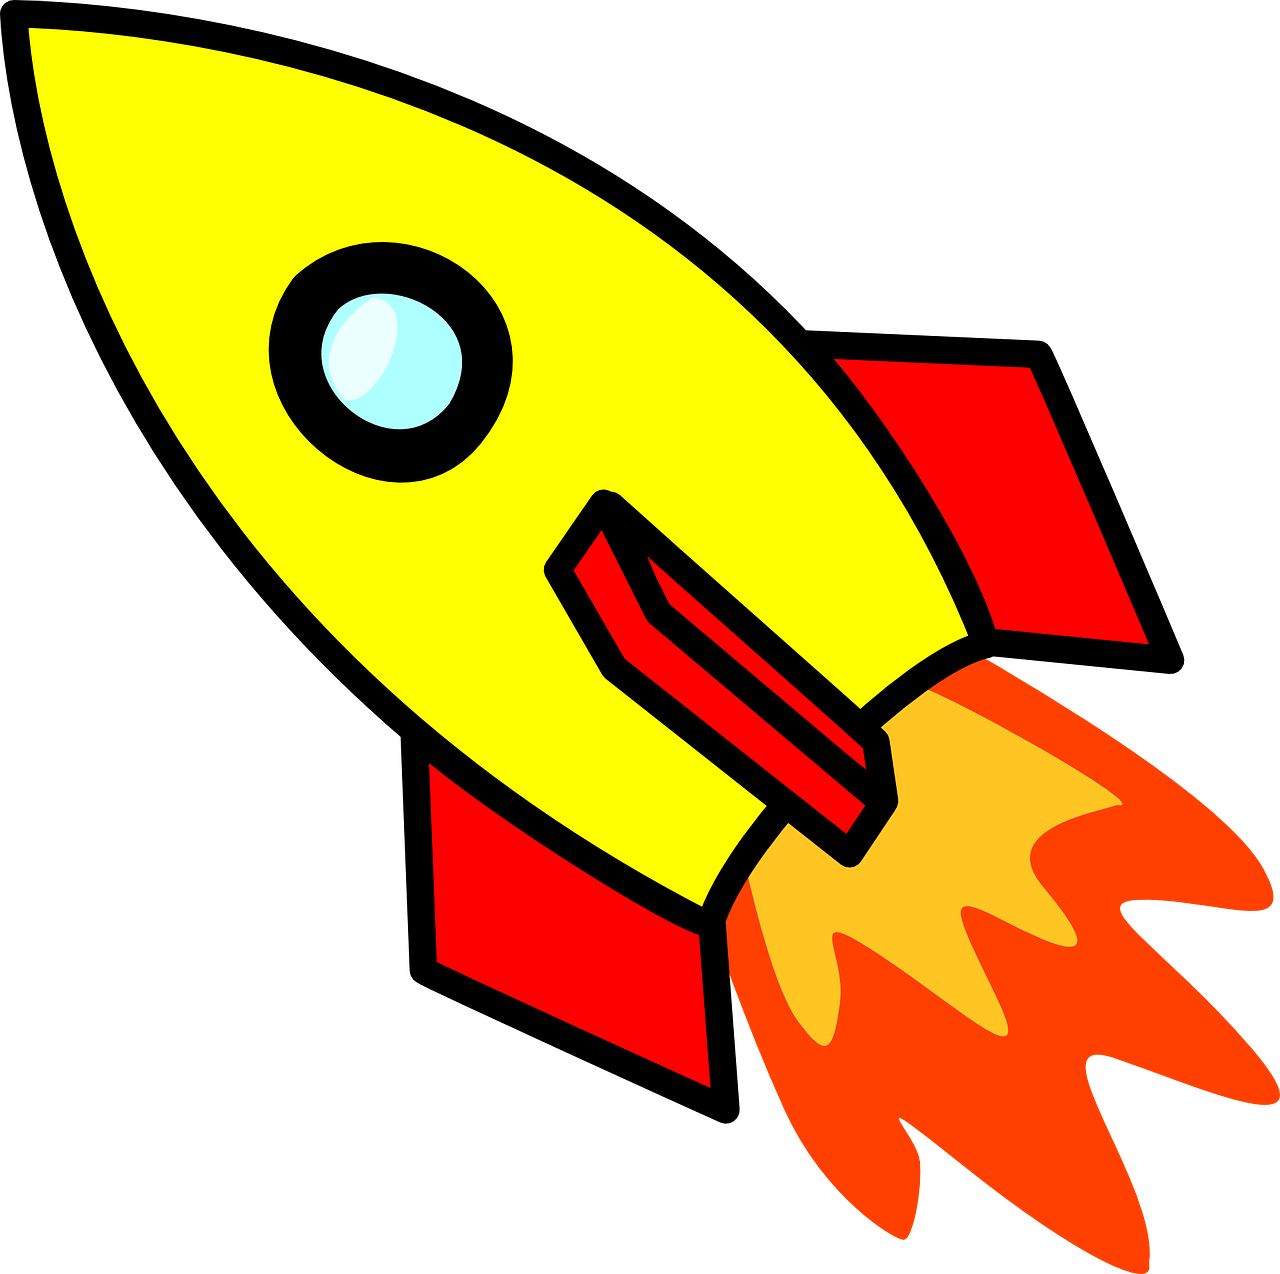 Free image on pixabay. Spaceship clipart space travel